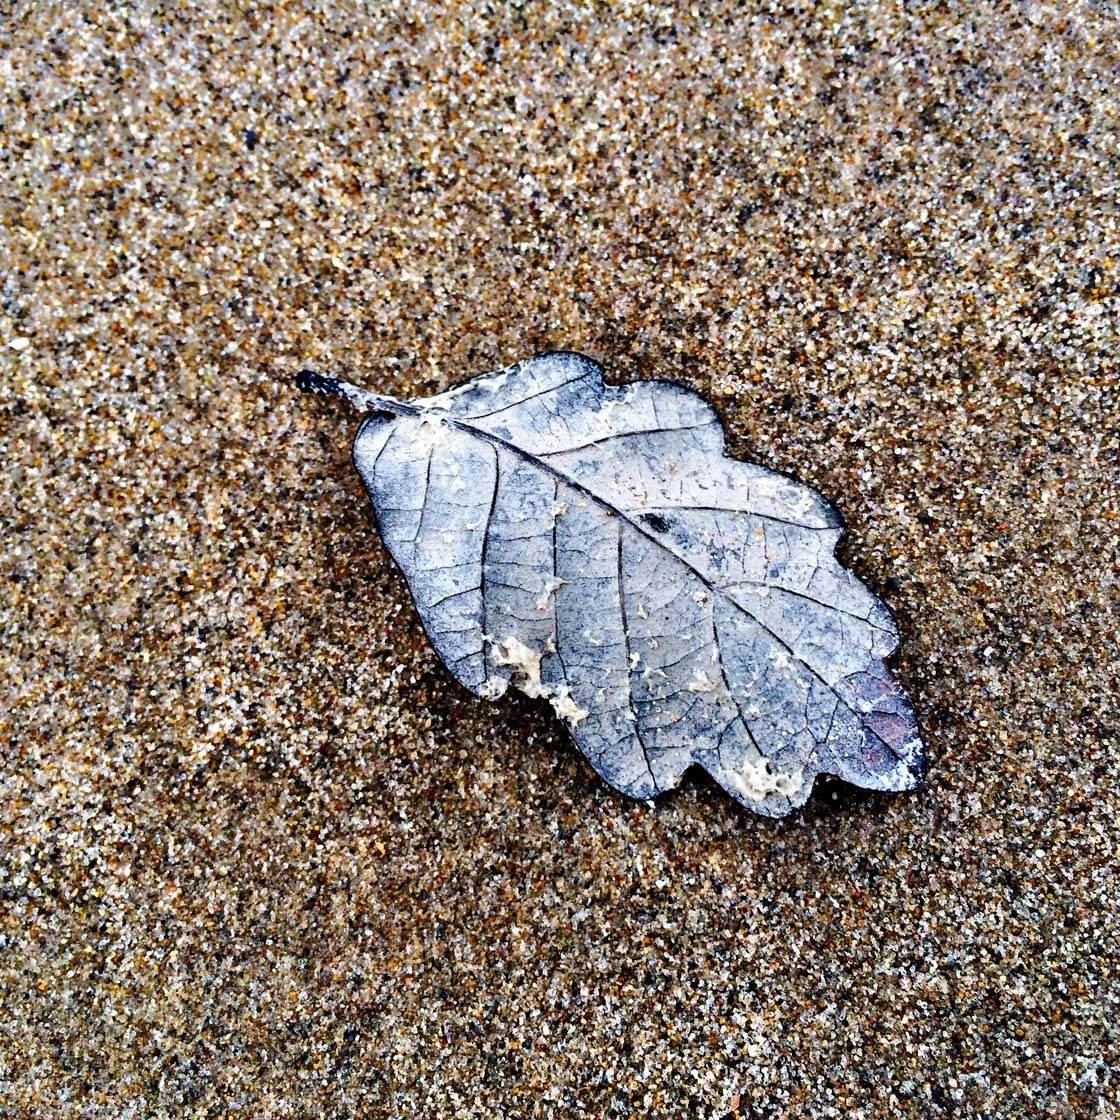 iPhone Photos of Leaves 20 no script